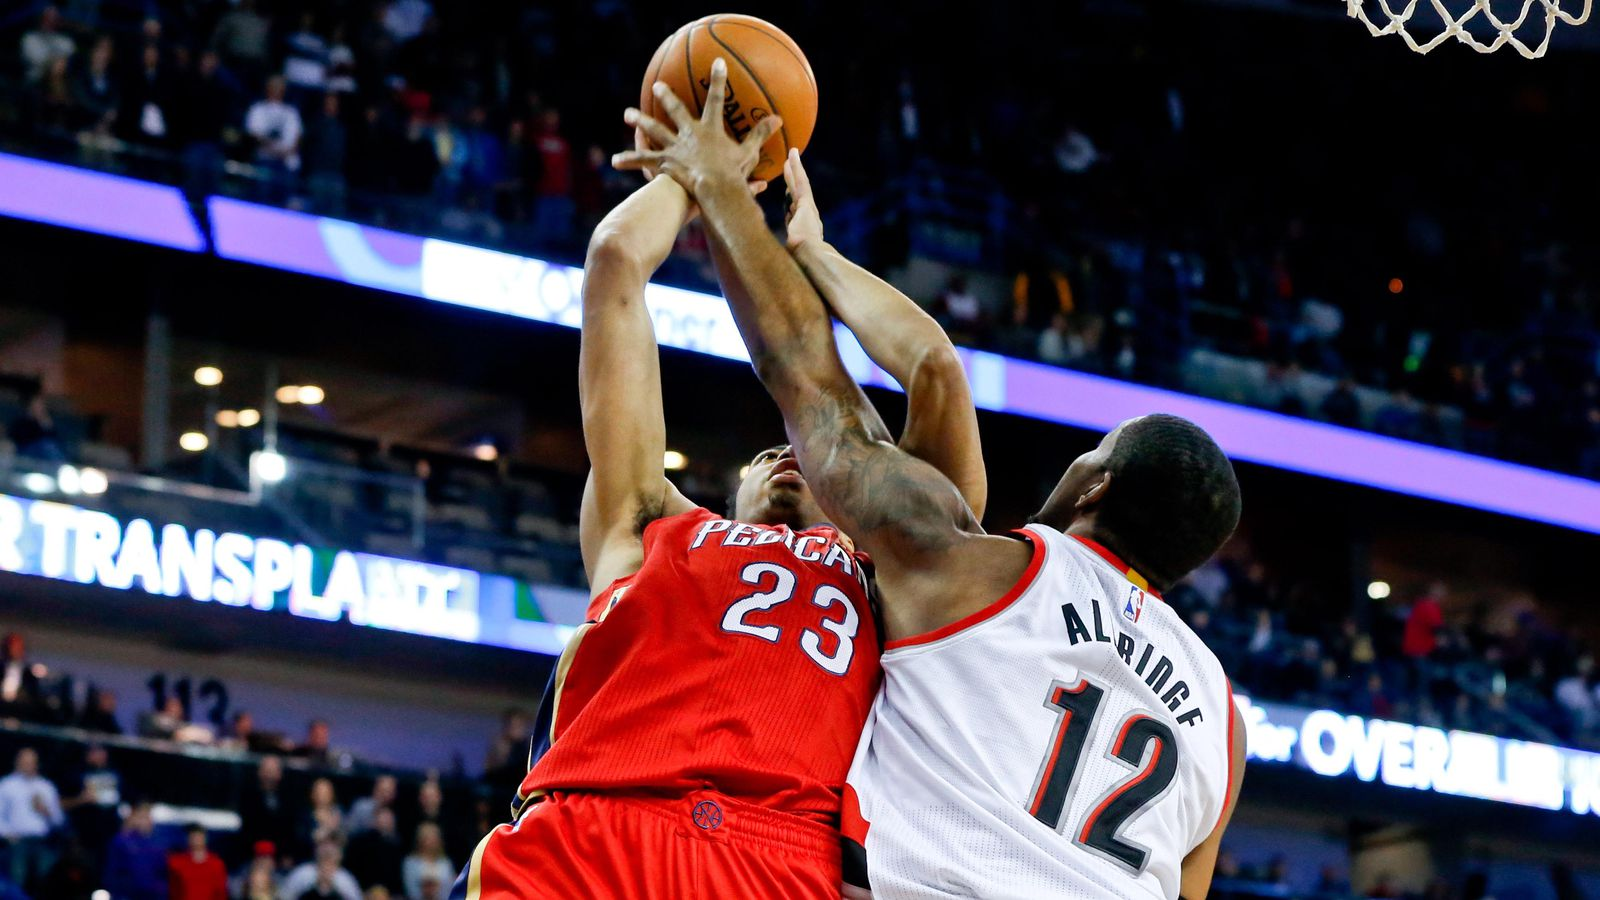 Blazers Vs. Pelicans Final Score 114-88; Portland Demolishes New Orleans - Blazeru0026#39;s Edge